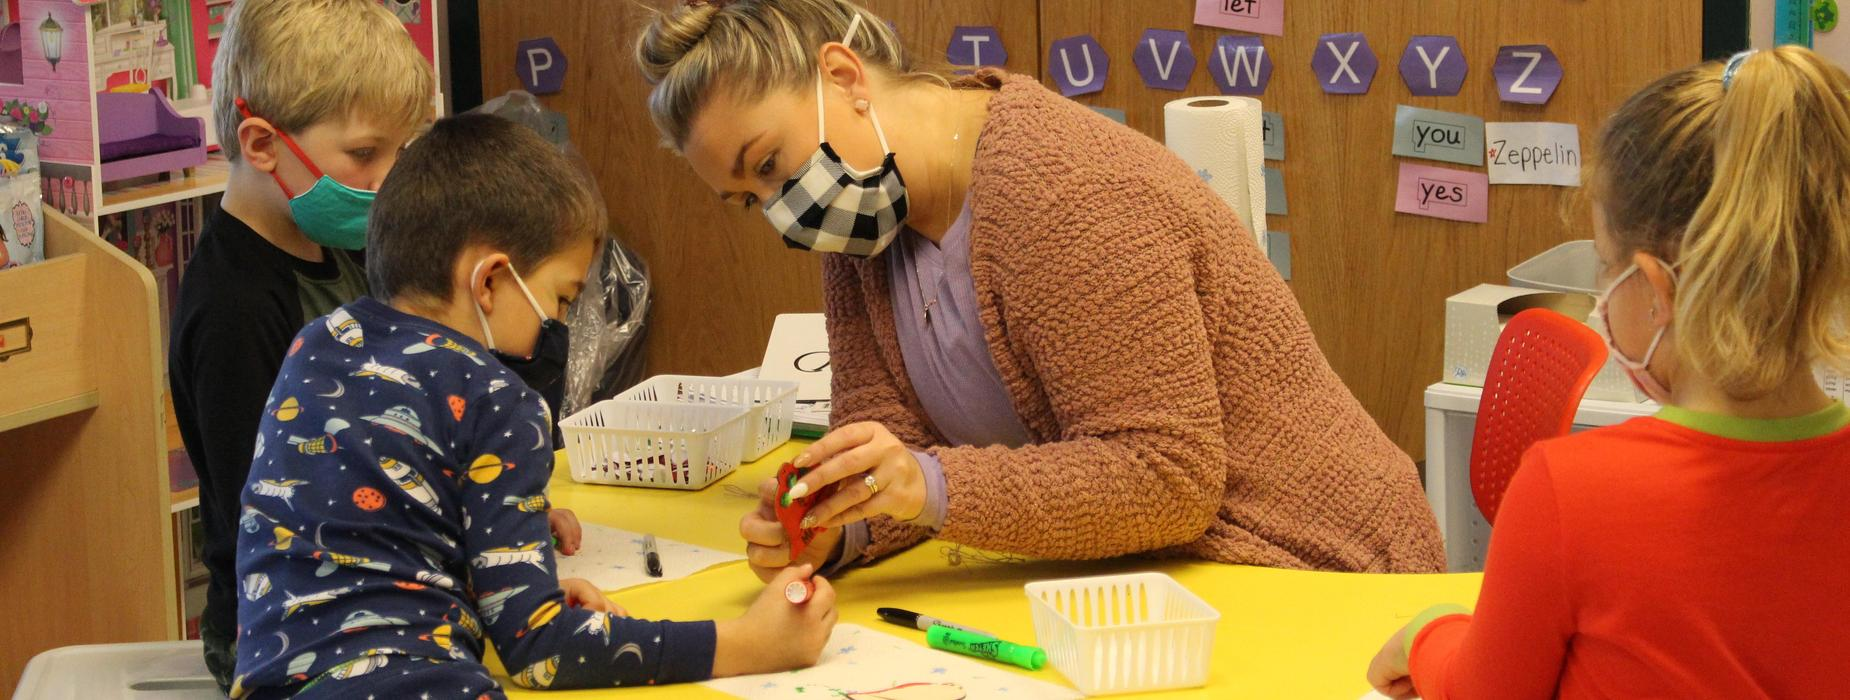 Teacher helping a students with crafts